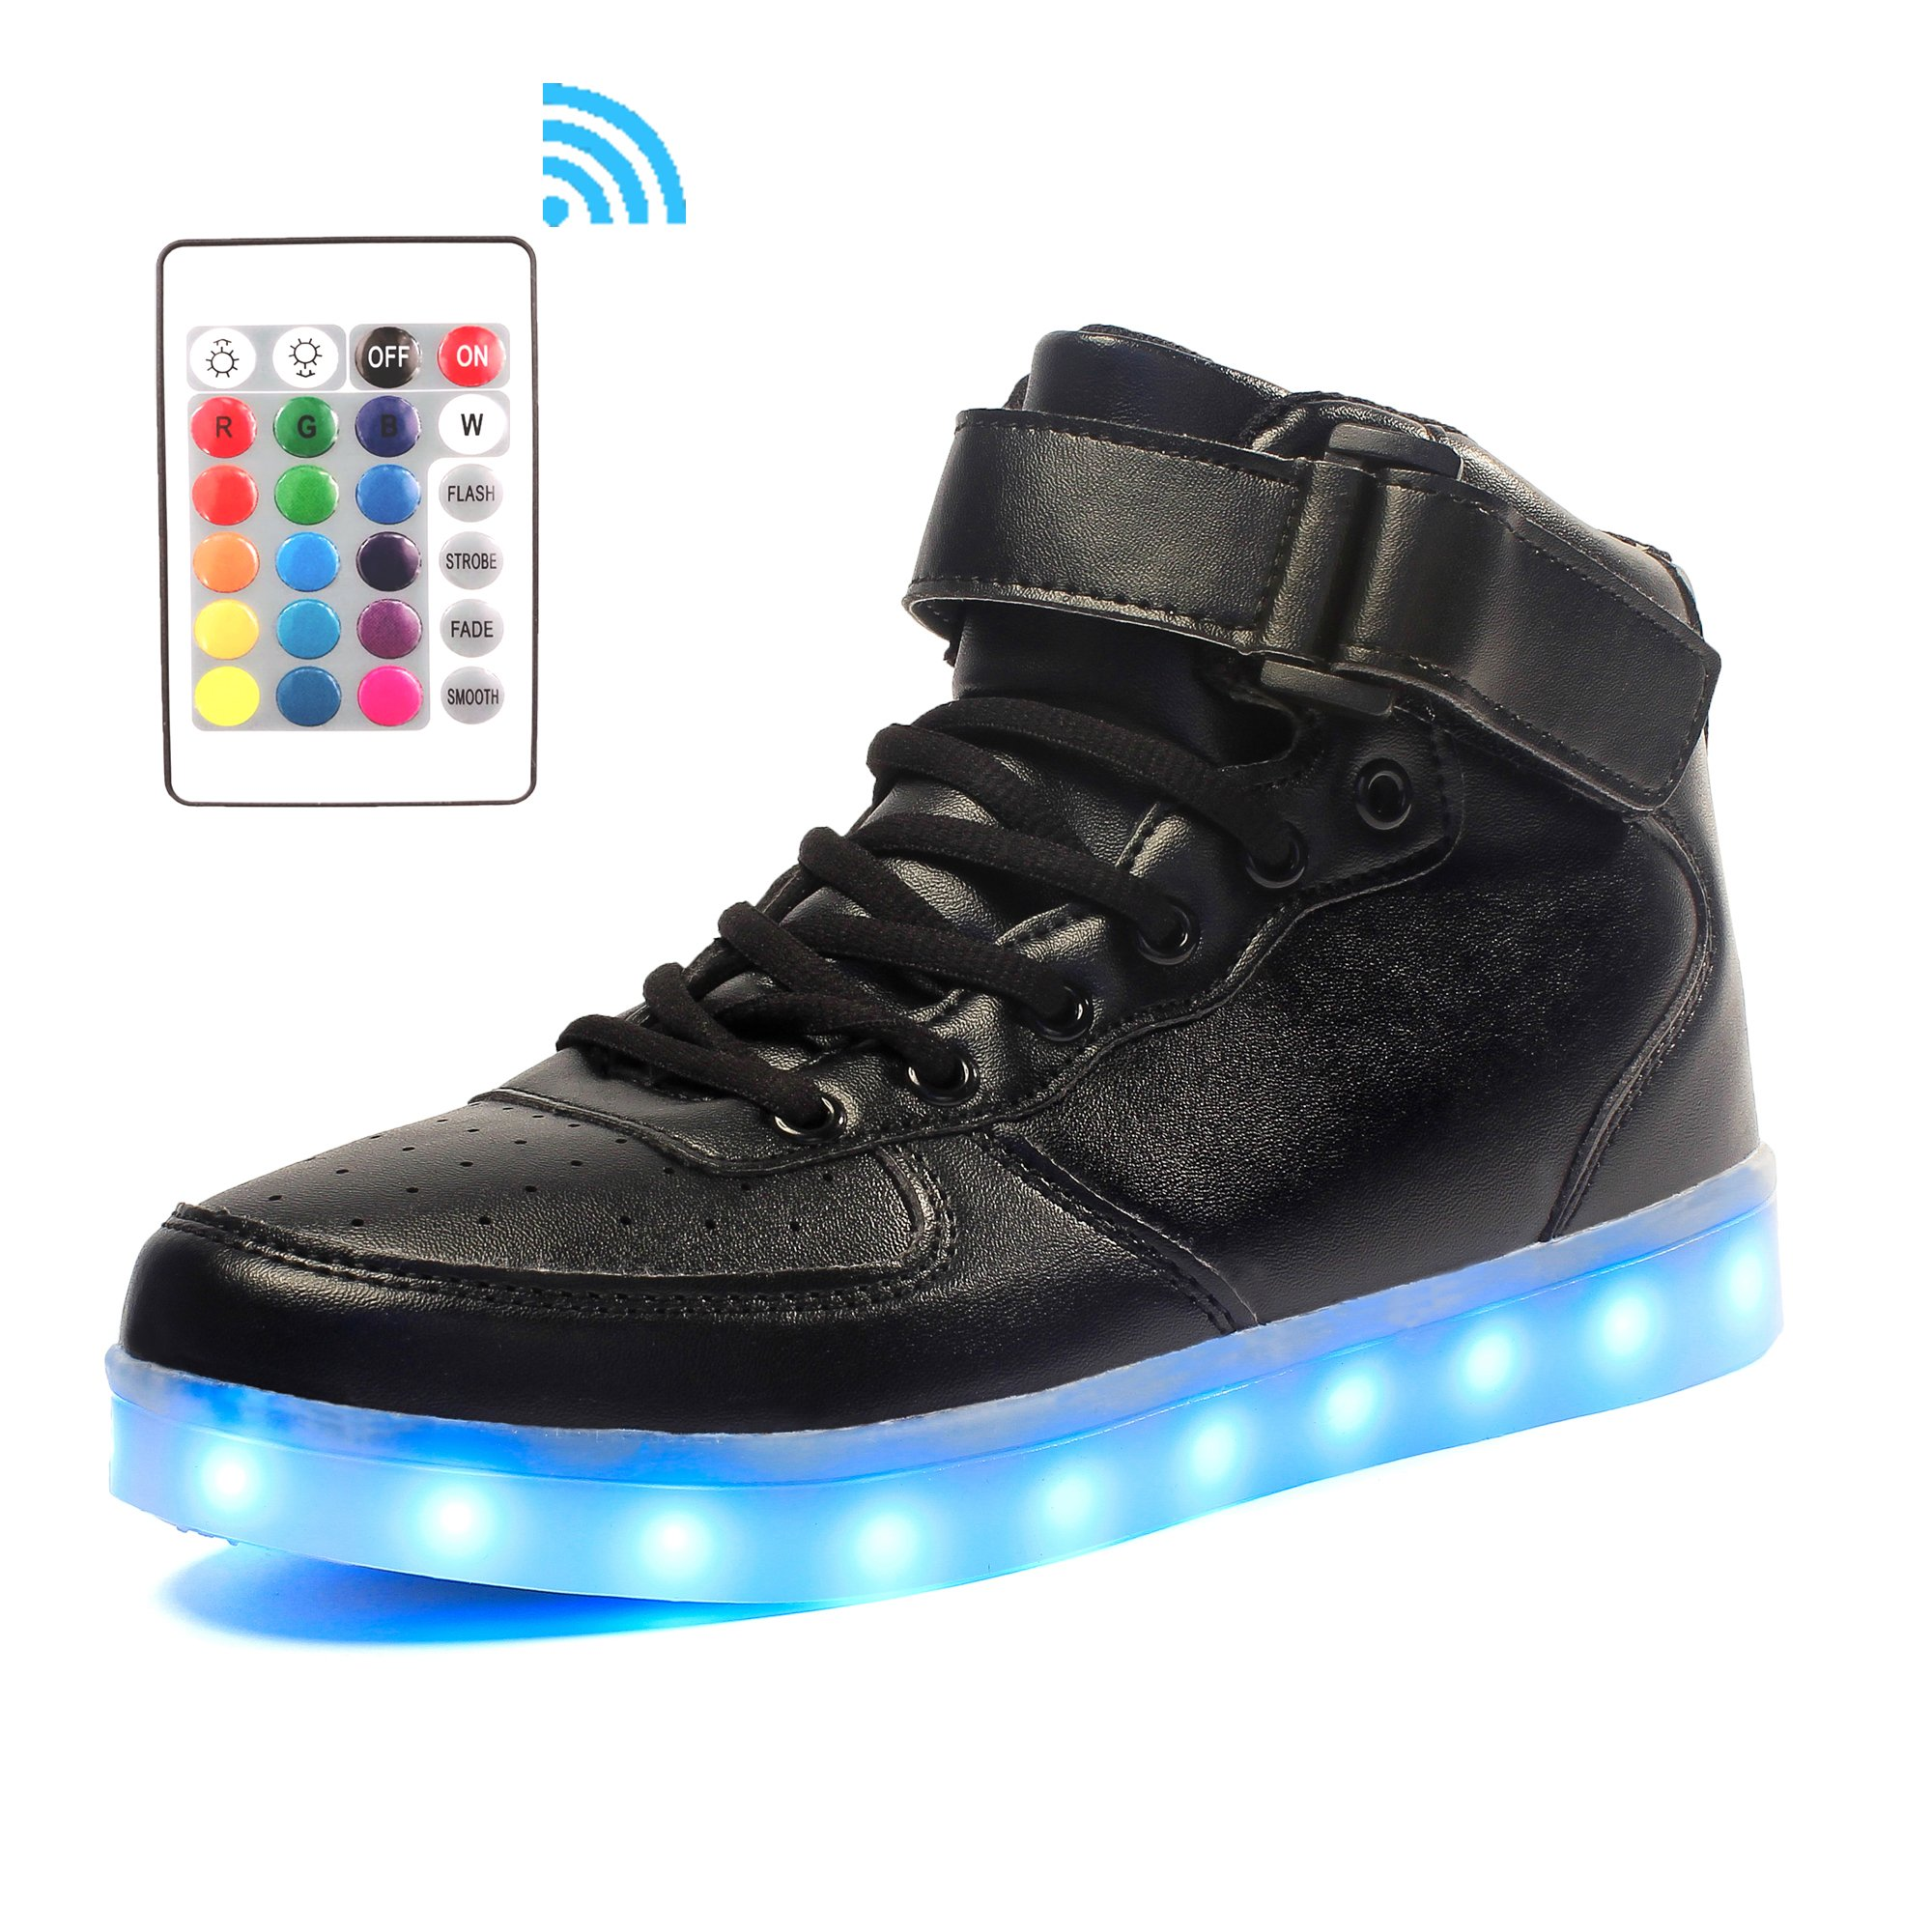 Voovix Kids LED Light up Shoes High-top Flashing Sneakers with Remote Control for Boys and Girls(Black,US10/CN28)